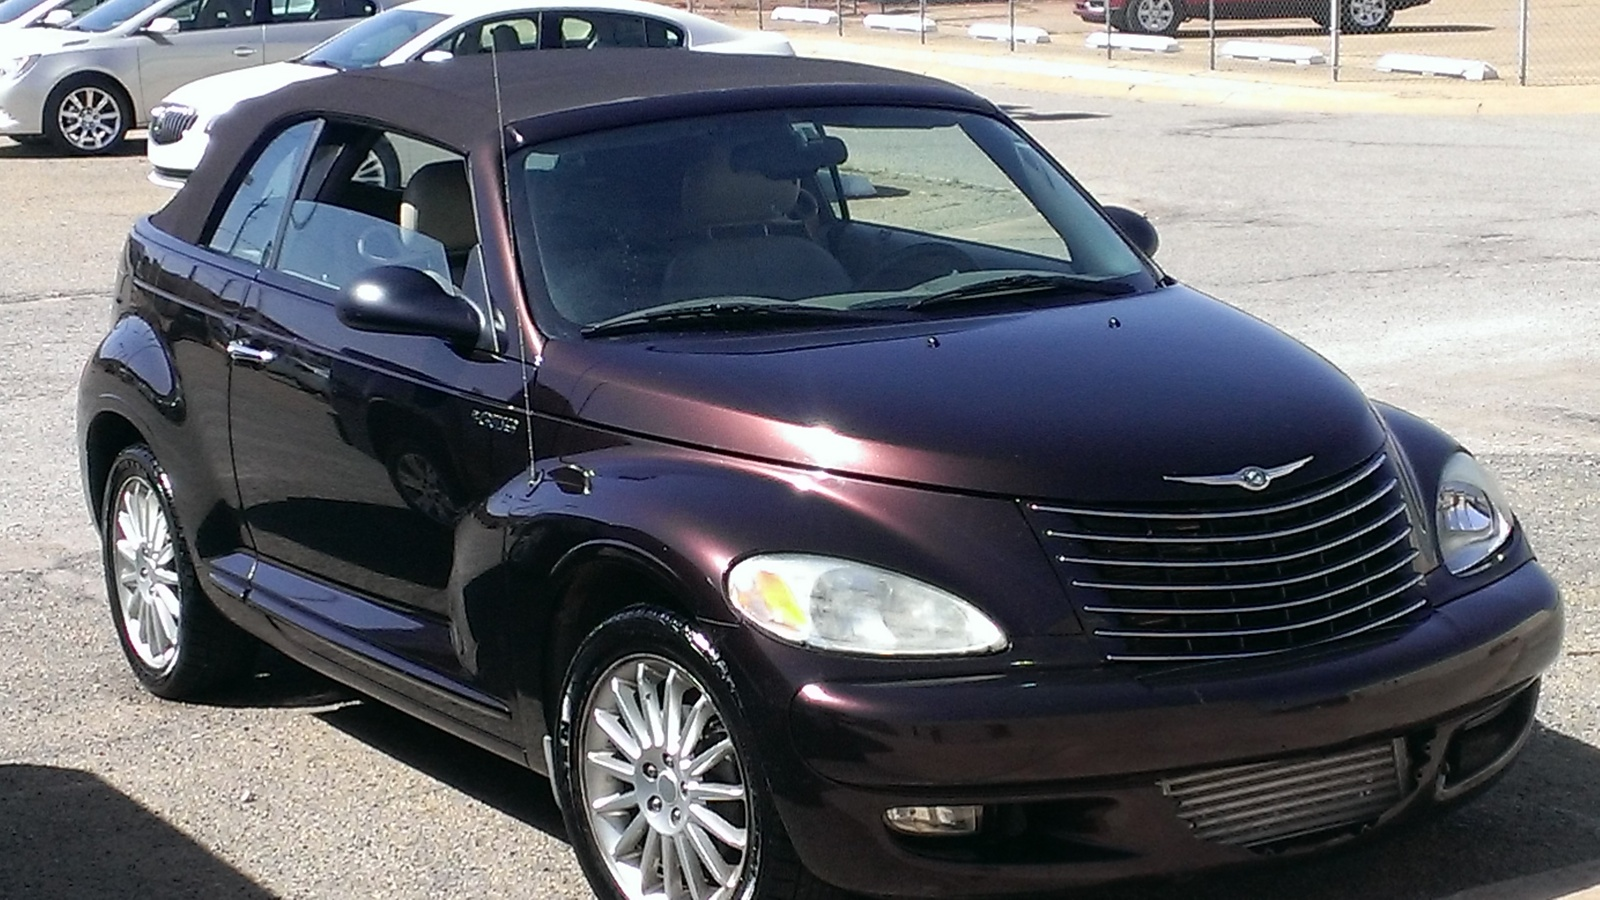 Toyota Dealers Near Me >> 2005 Chrysler PT Cruiser - Pictures - CarGurus